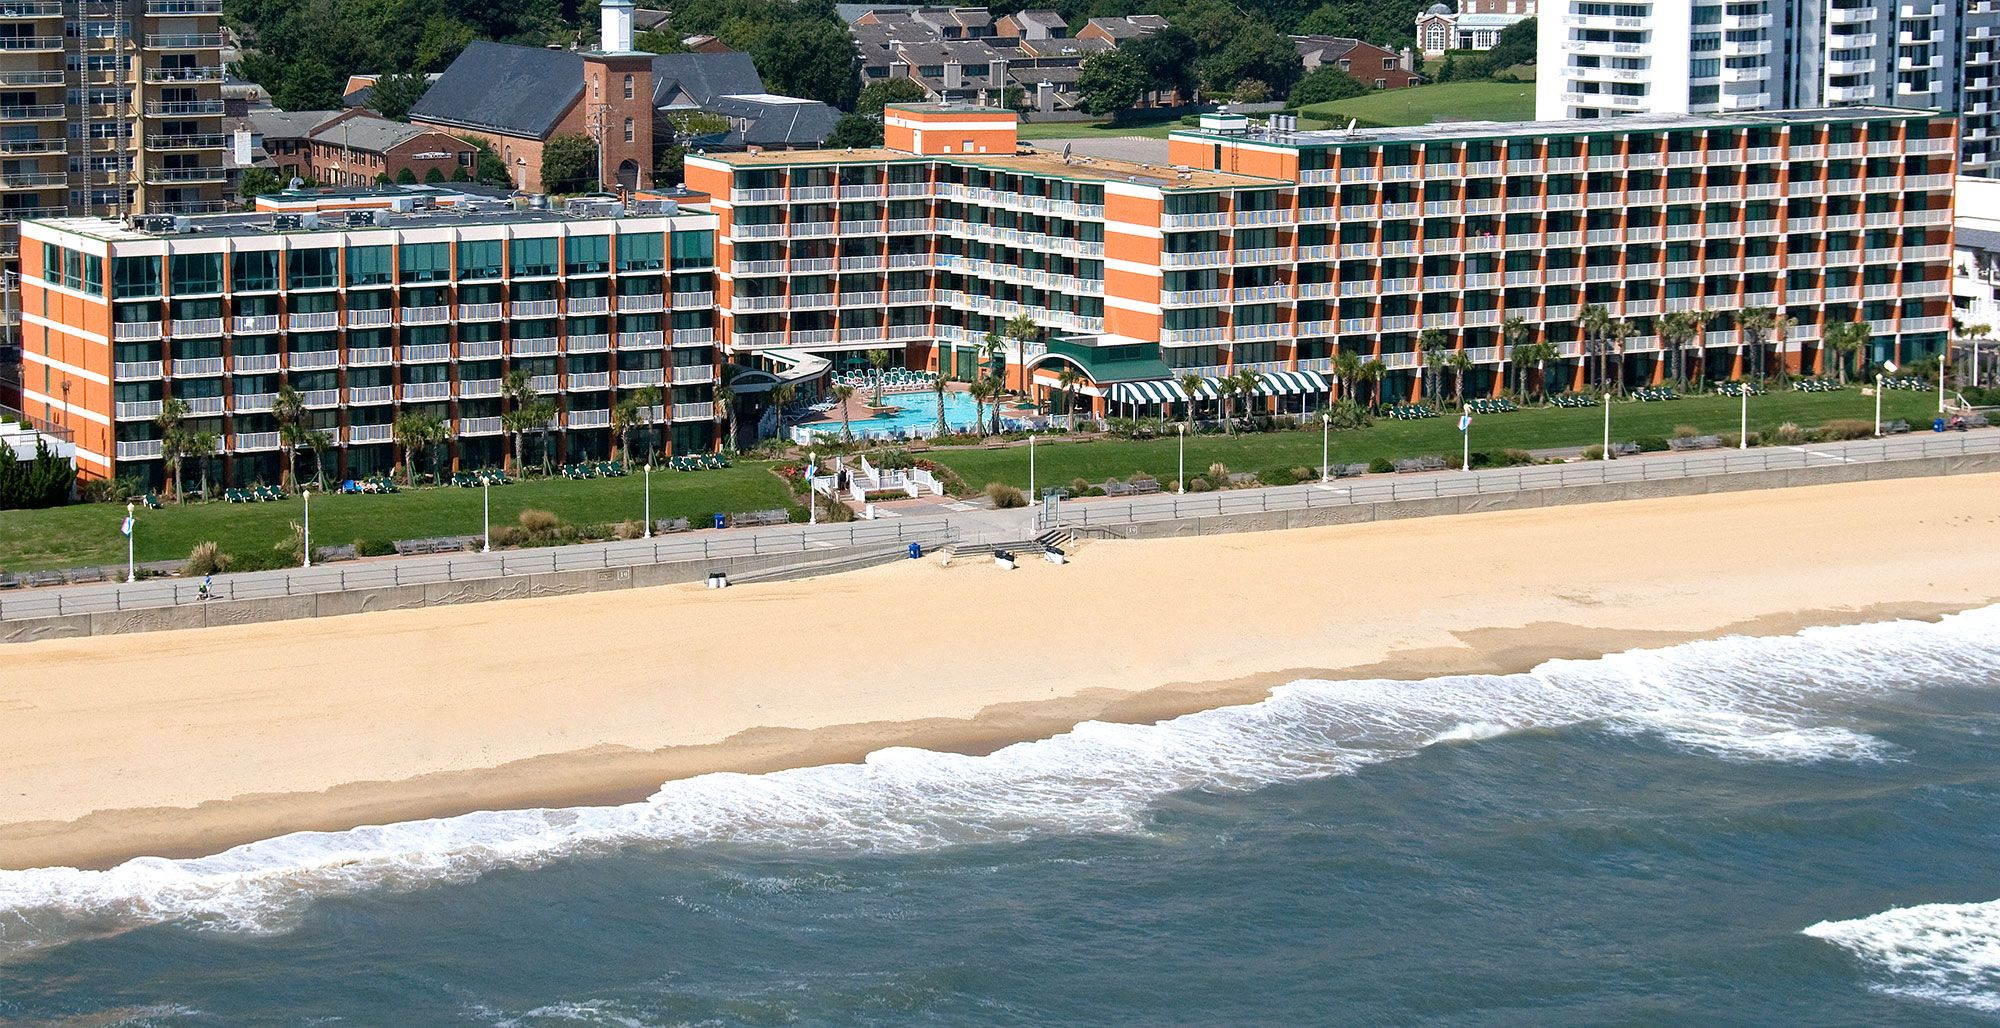 Take Advantage Of A Prime Location Near Top Attractions Like The Virginia Beach Boardwalk When You Stay At Our Premier Oceanfront Hotel